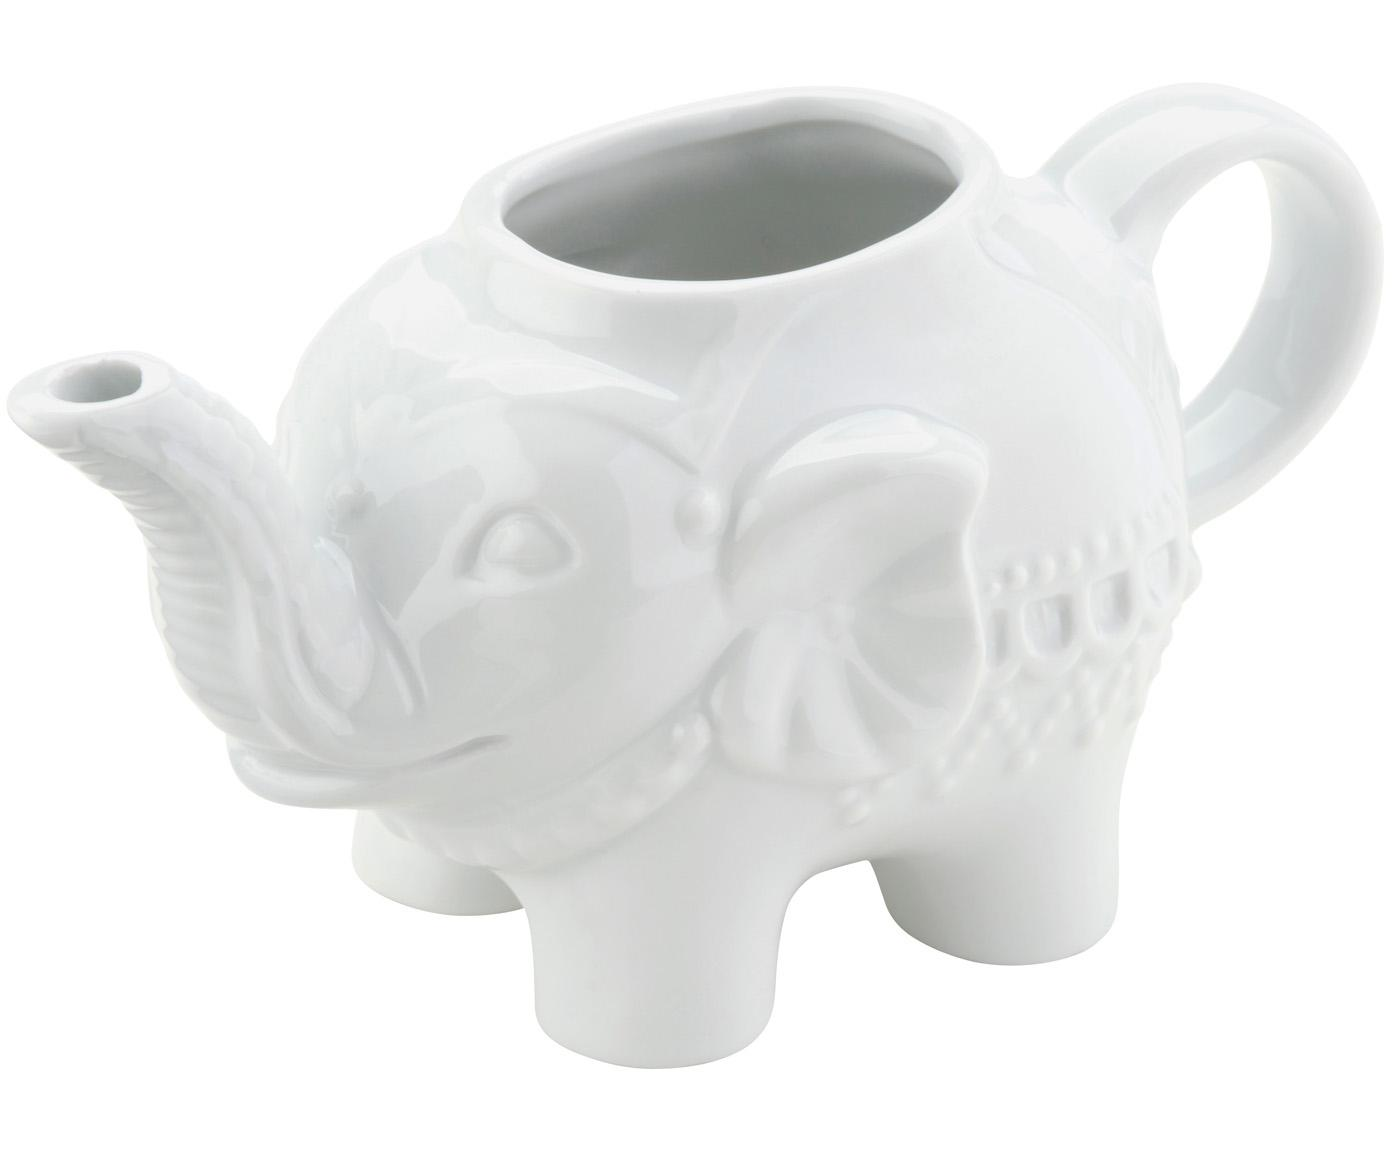 Brocca da latte Elephant, Porcellana, Bianco, L 15 x A 8 cm